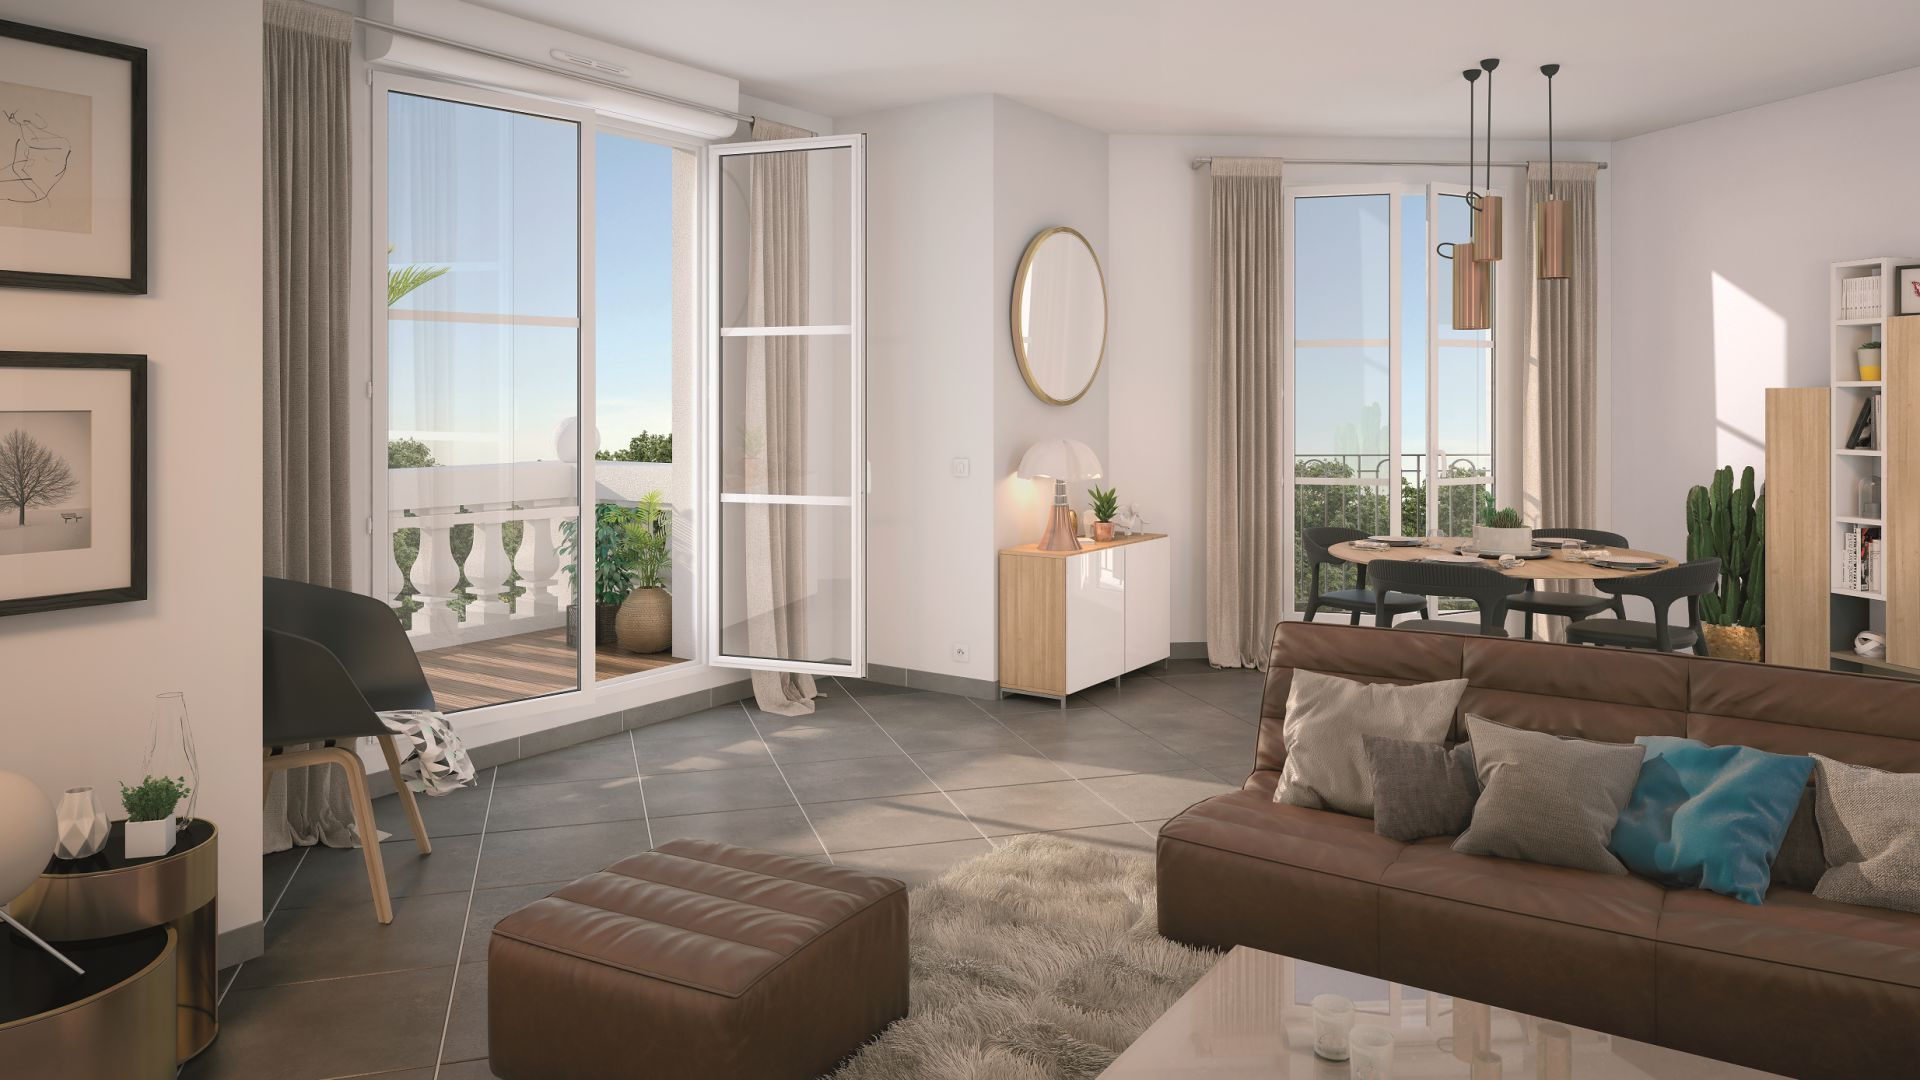 GreenCity immobilier - achat appartement neuf - Villiers Sur Marne - 94350 - Résidence Grand Angle - vue intérieure